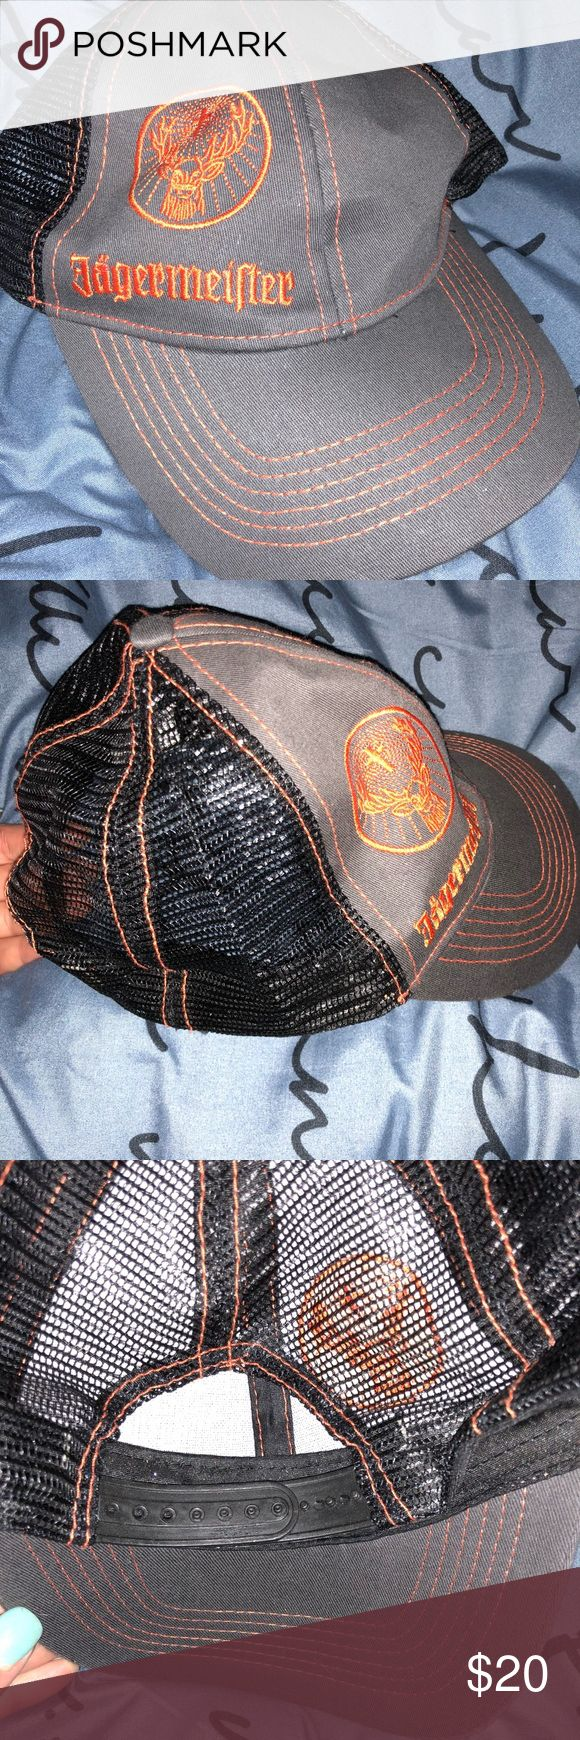 PRICE DROPJaegermeister embroidered baseball cap Jagermeister embroidered baseball cap. Adjustable, NEW, NEVER WORN $7  PRICE DROP  HOLIDAY SALE ⚡️⚡️⚡️ Accessories Hats